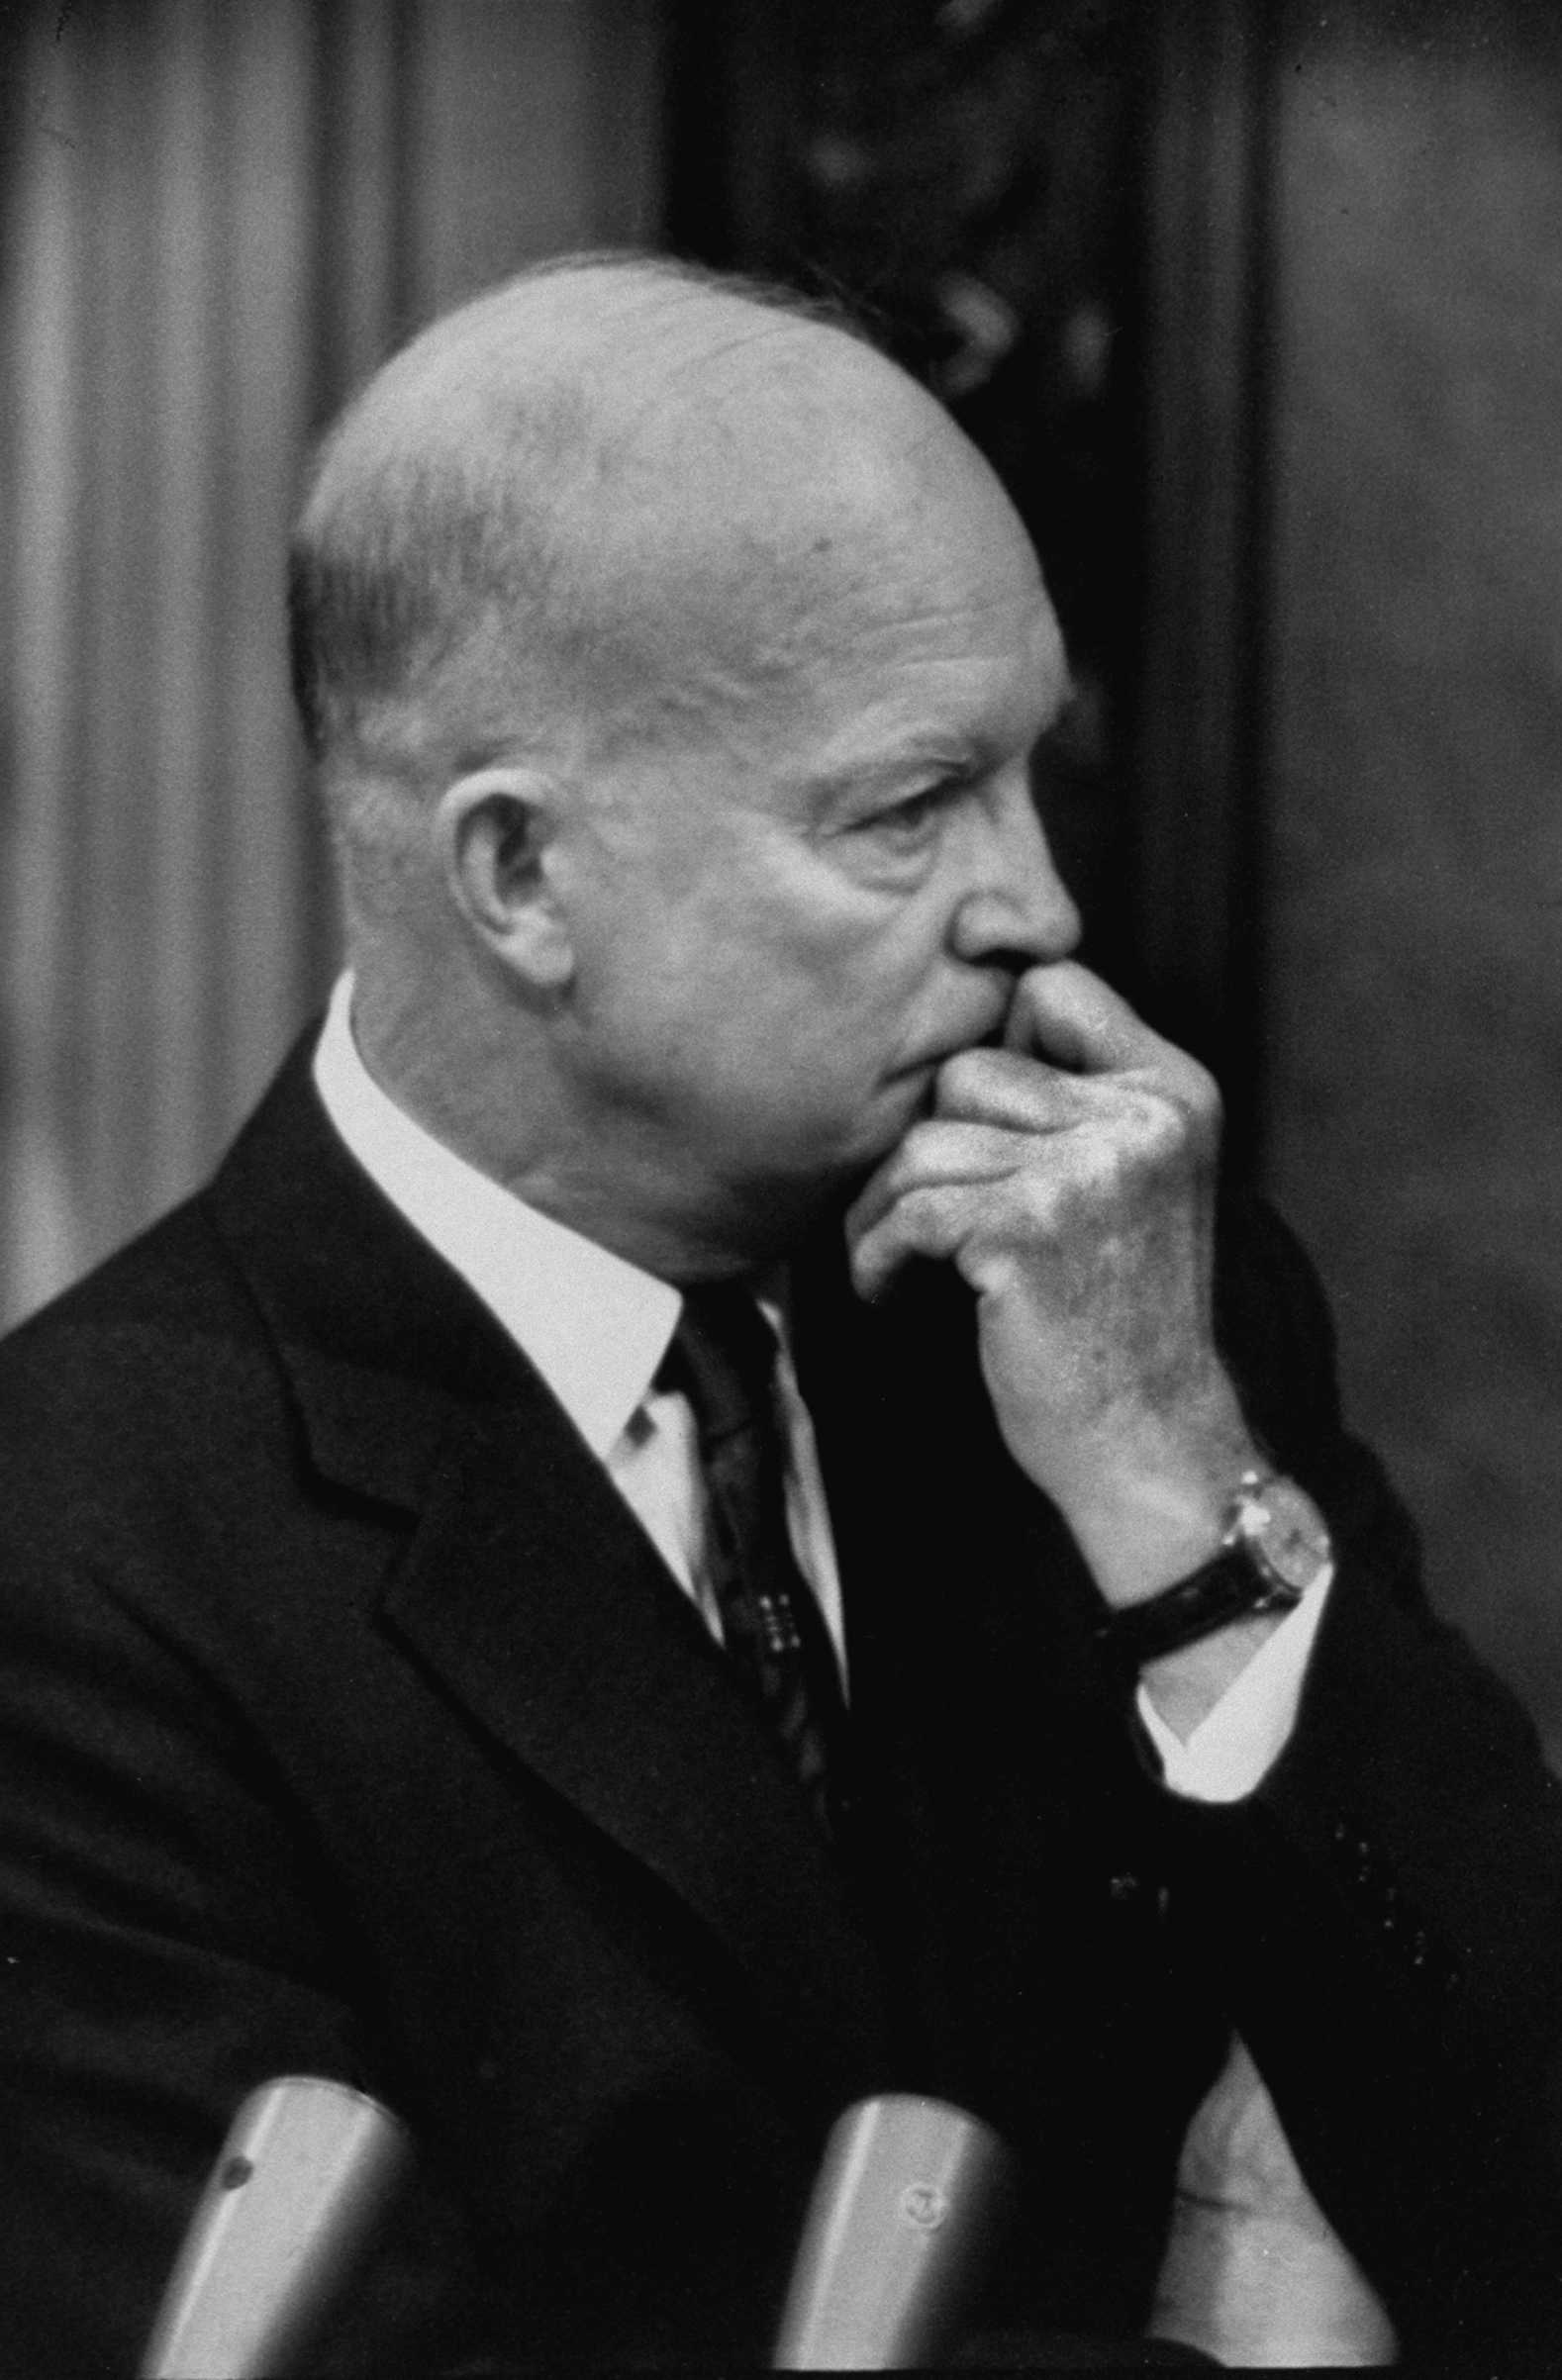 President Dwight D. Eisenhower, thinking, in 1953.